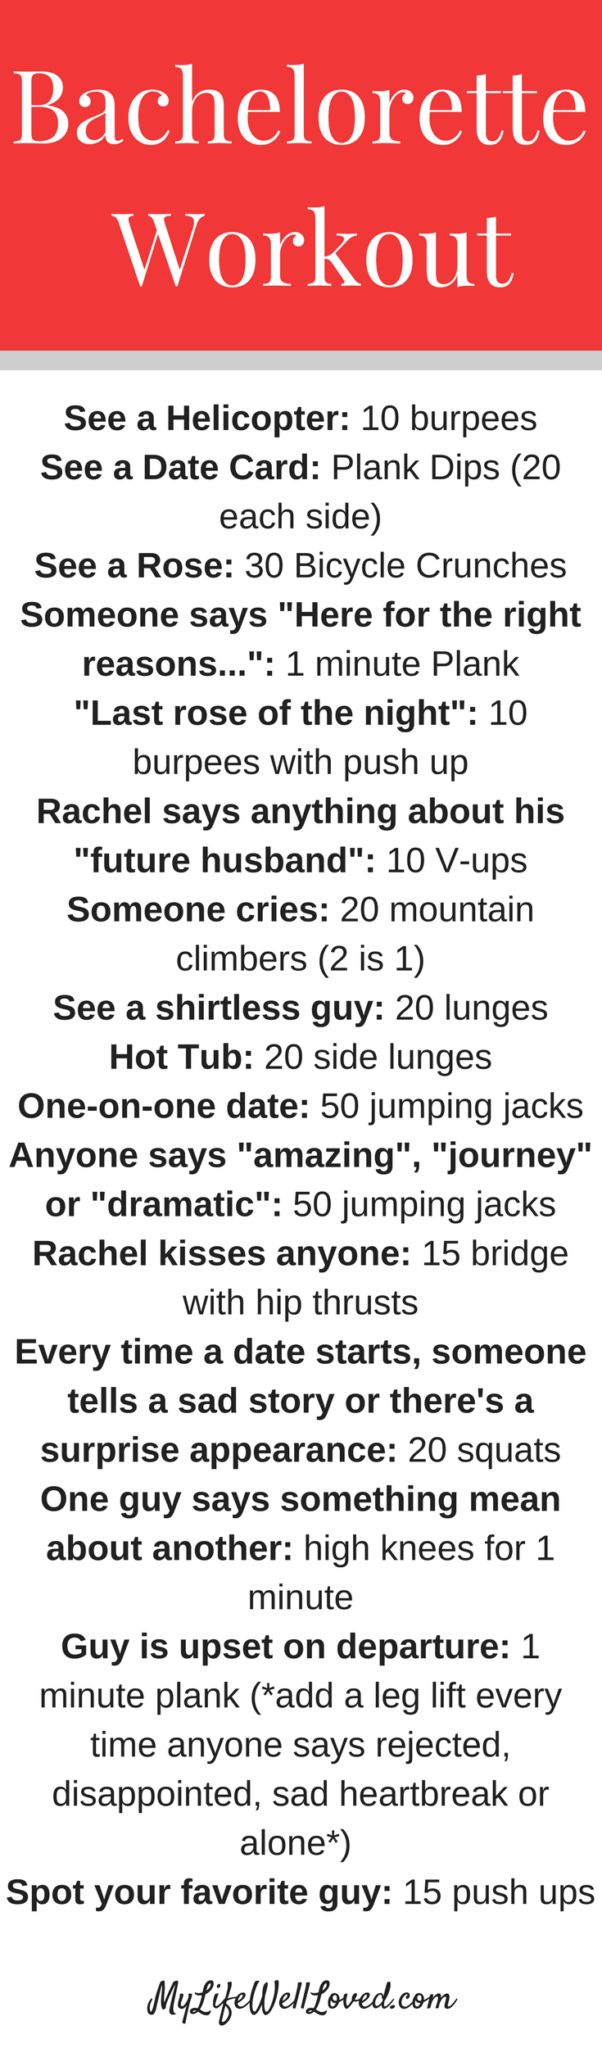 Bachelorette Workout Game // The Bachelor Exercise Game // The Bachelorette Party Ideas